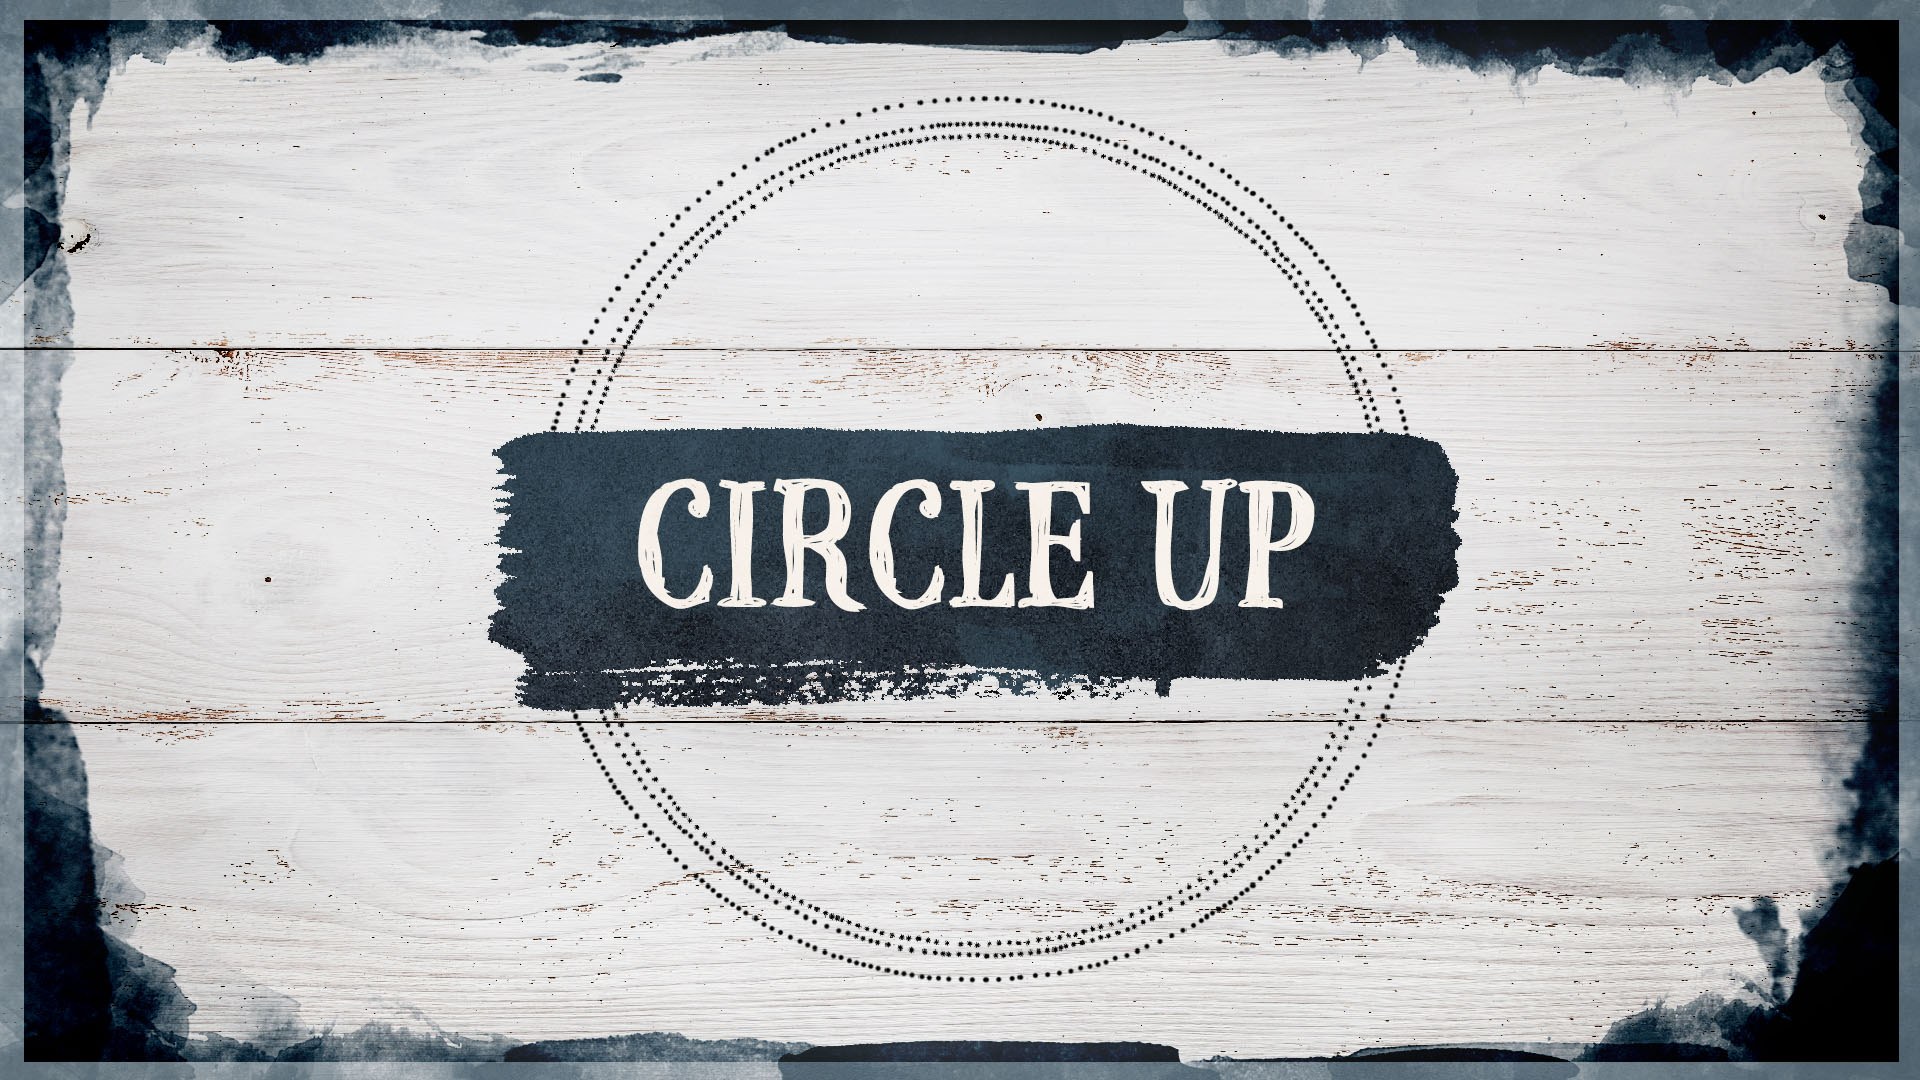 CircleUp_mainimage.jpg